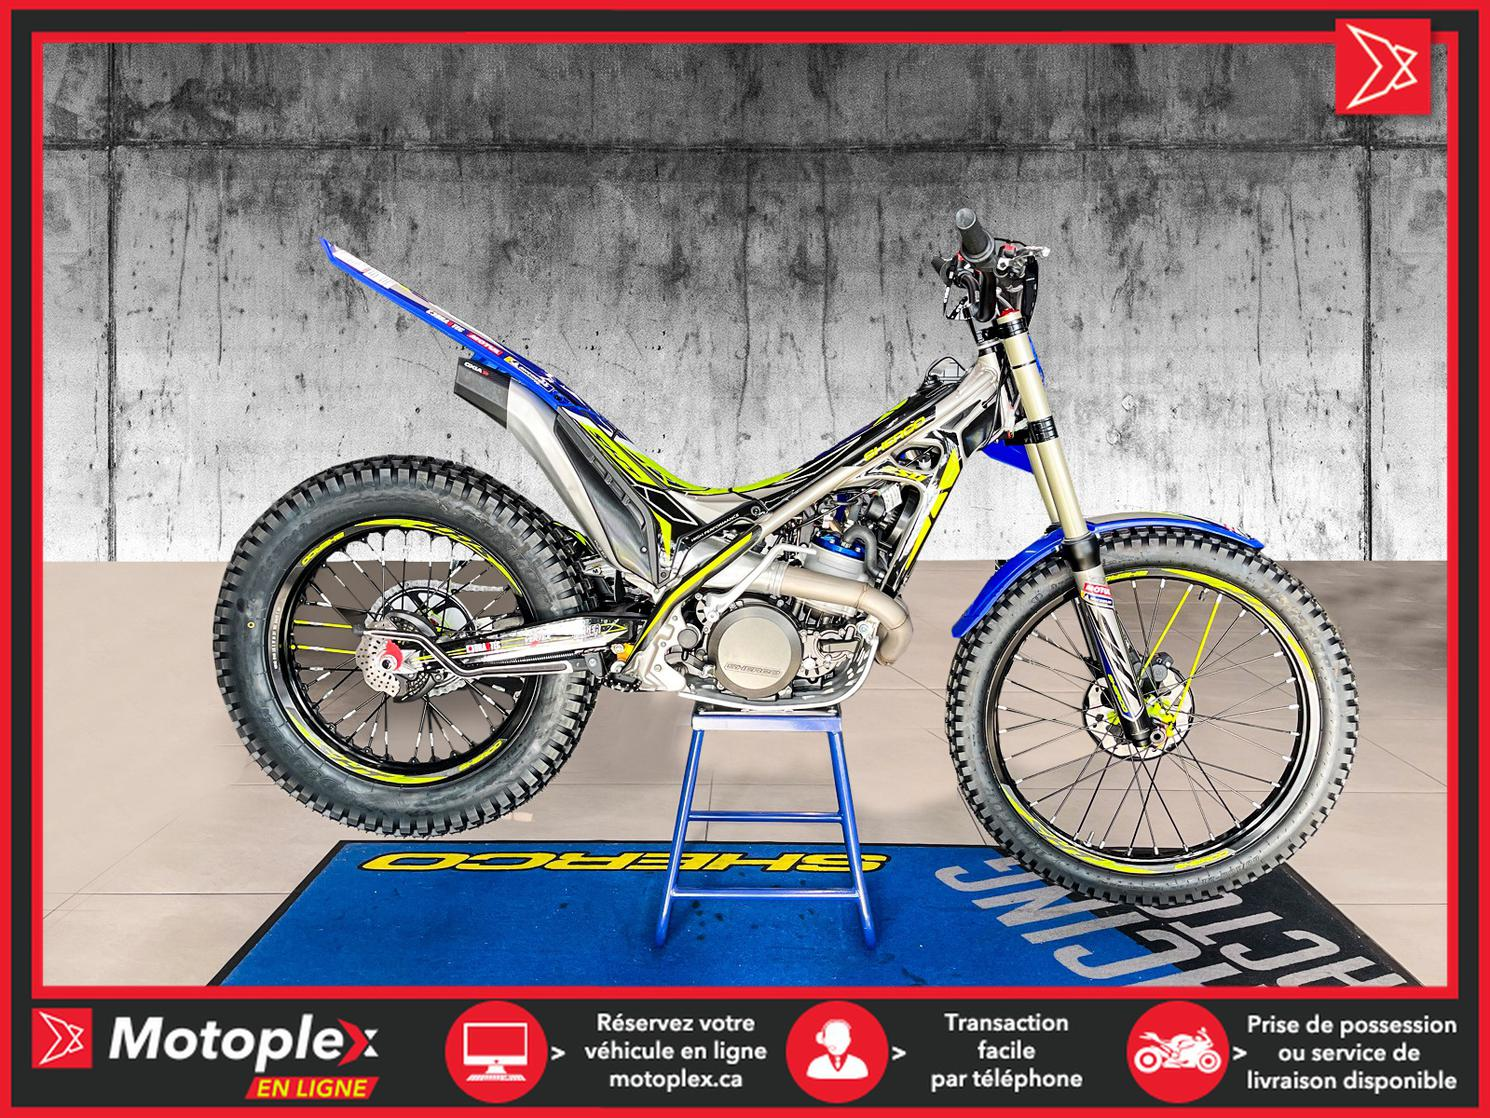 2021 SHERCO 250 ST FACTORY TRIAL